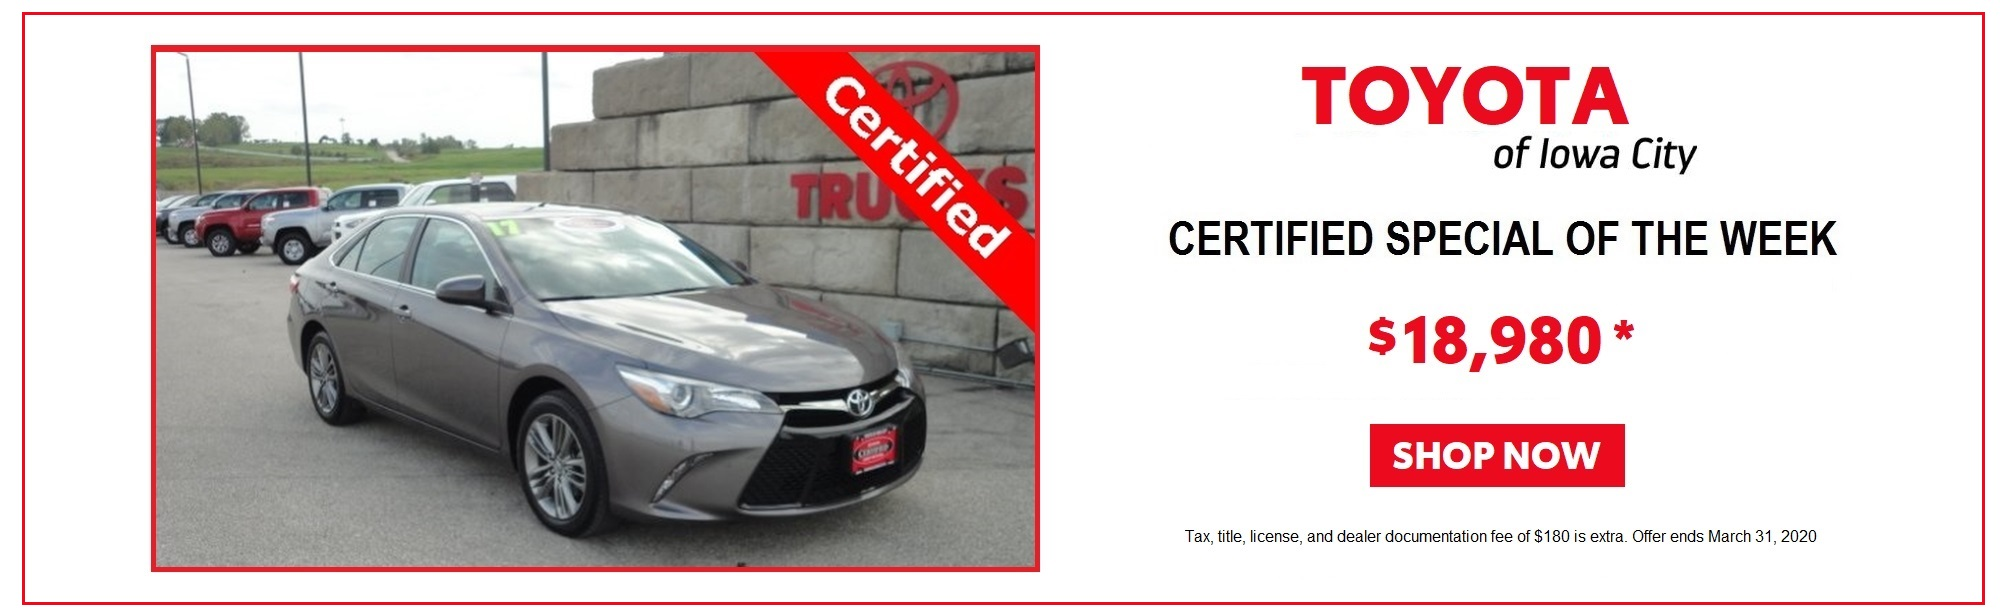 Certified Special at Toyota of Iowa City  2017 Camry